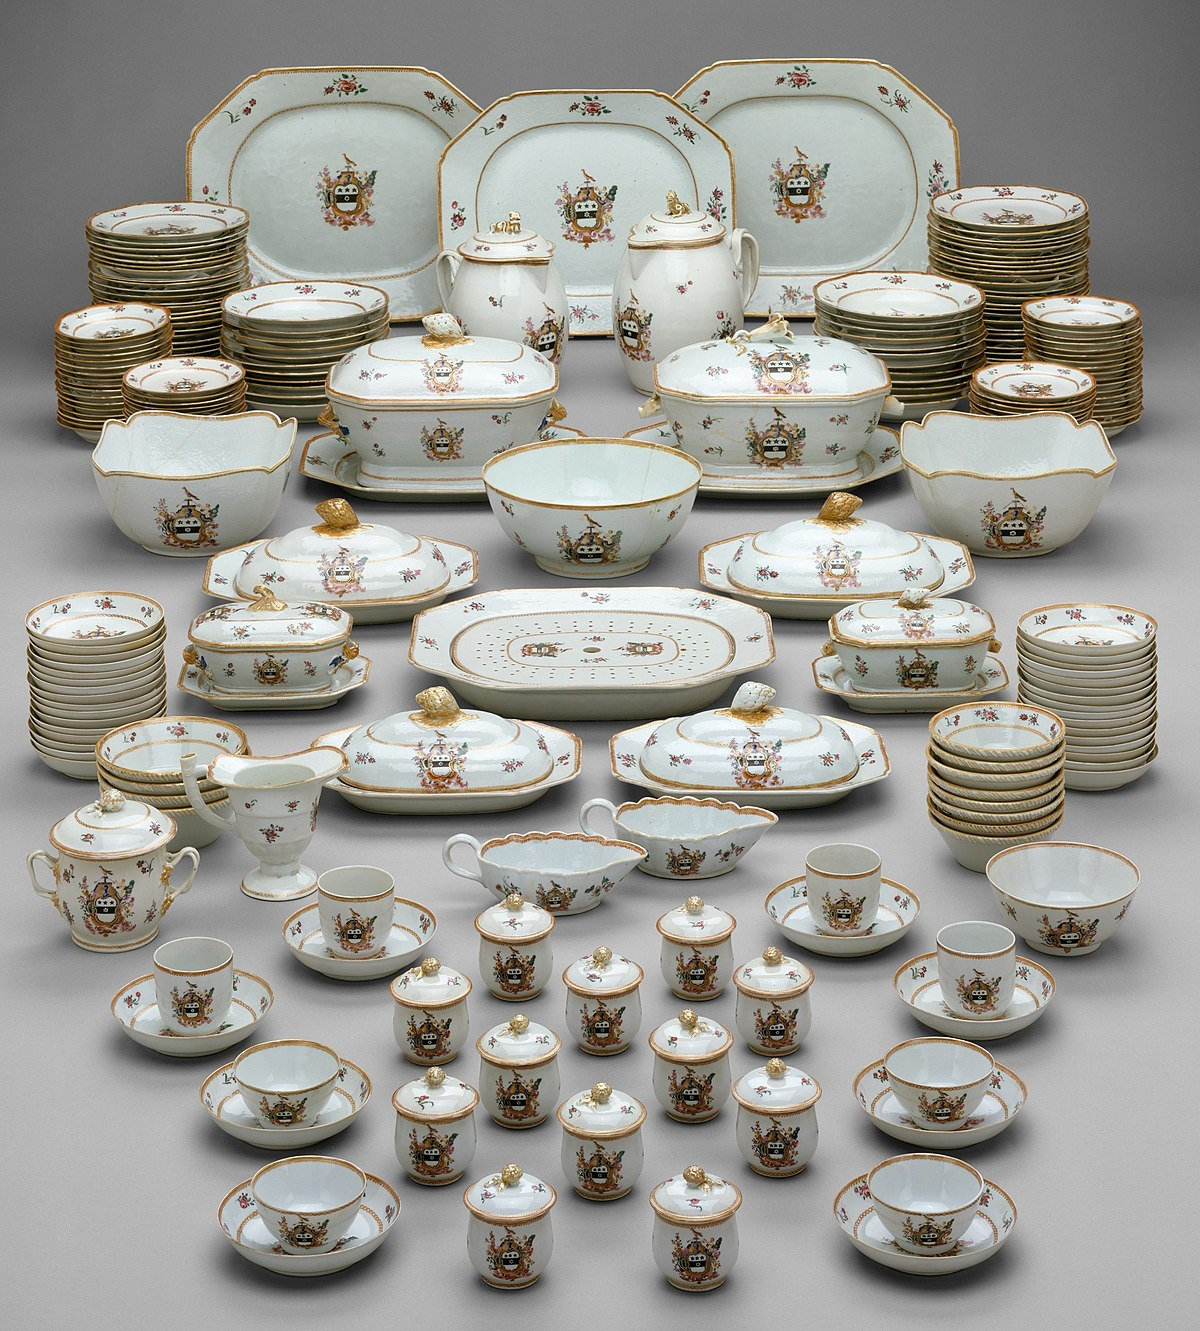 Chinese export porcelain - Wikipedia